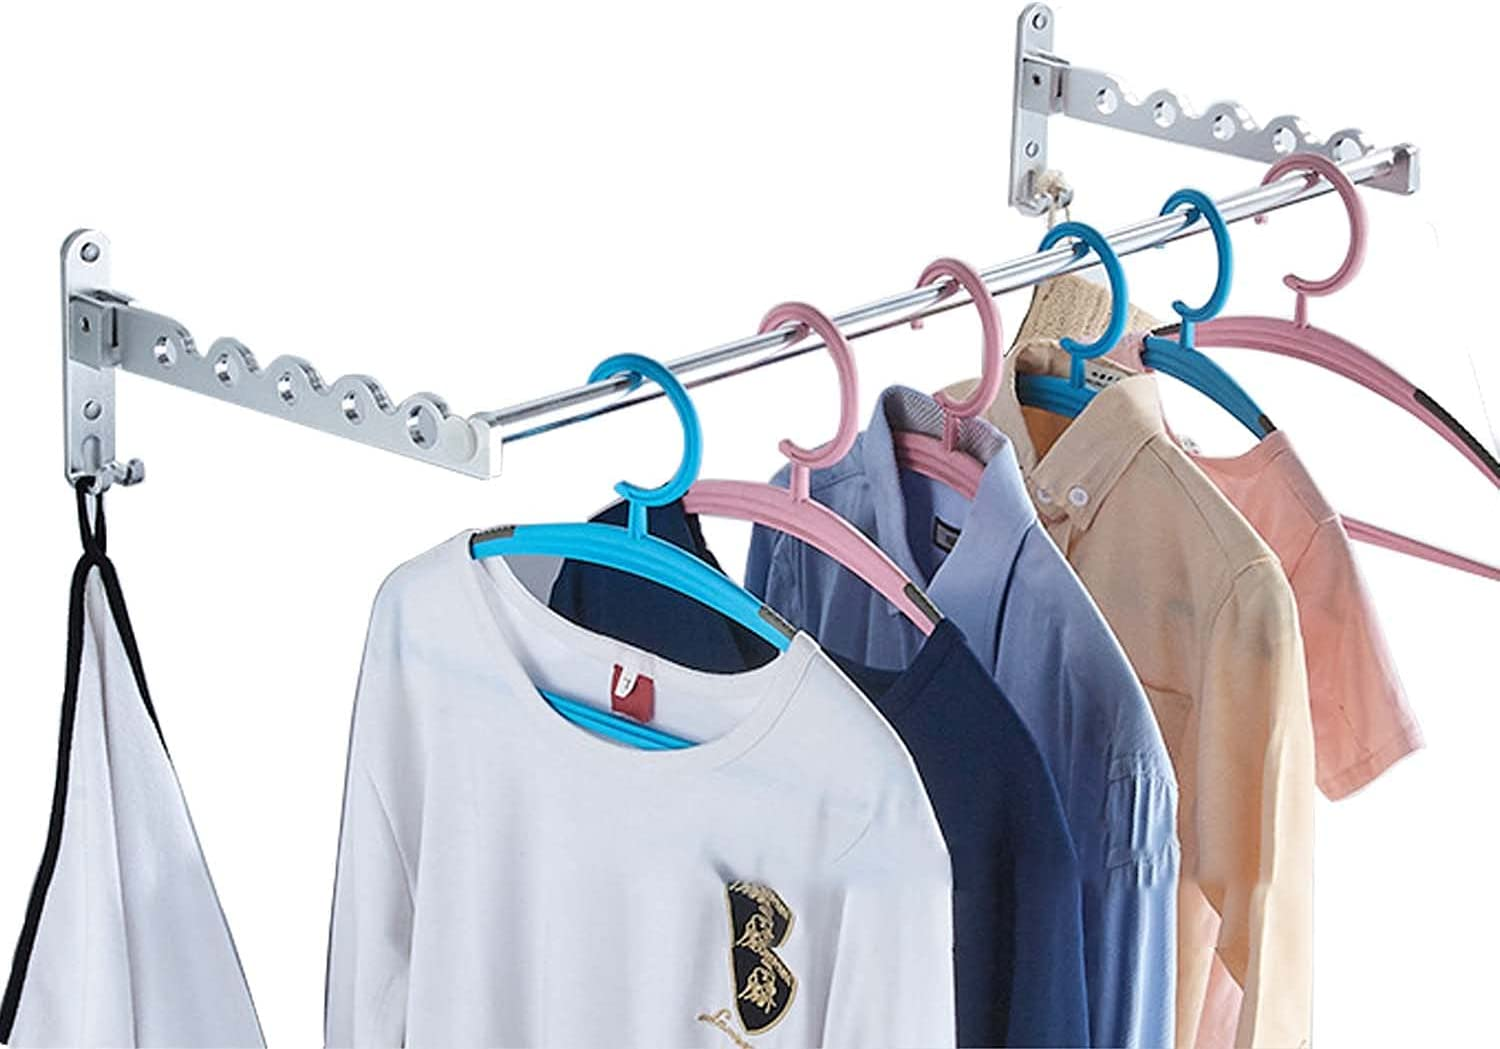 FChome Wall Mounted Popular shop is the lowest Import price challenge Clothes Drying Rack 2 with Foldin Racks Rod